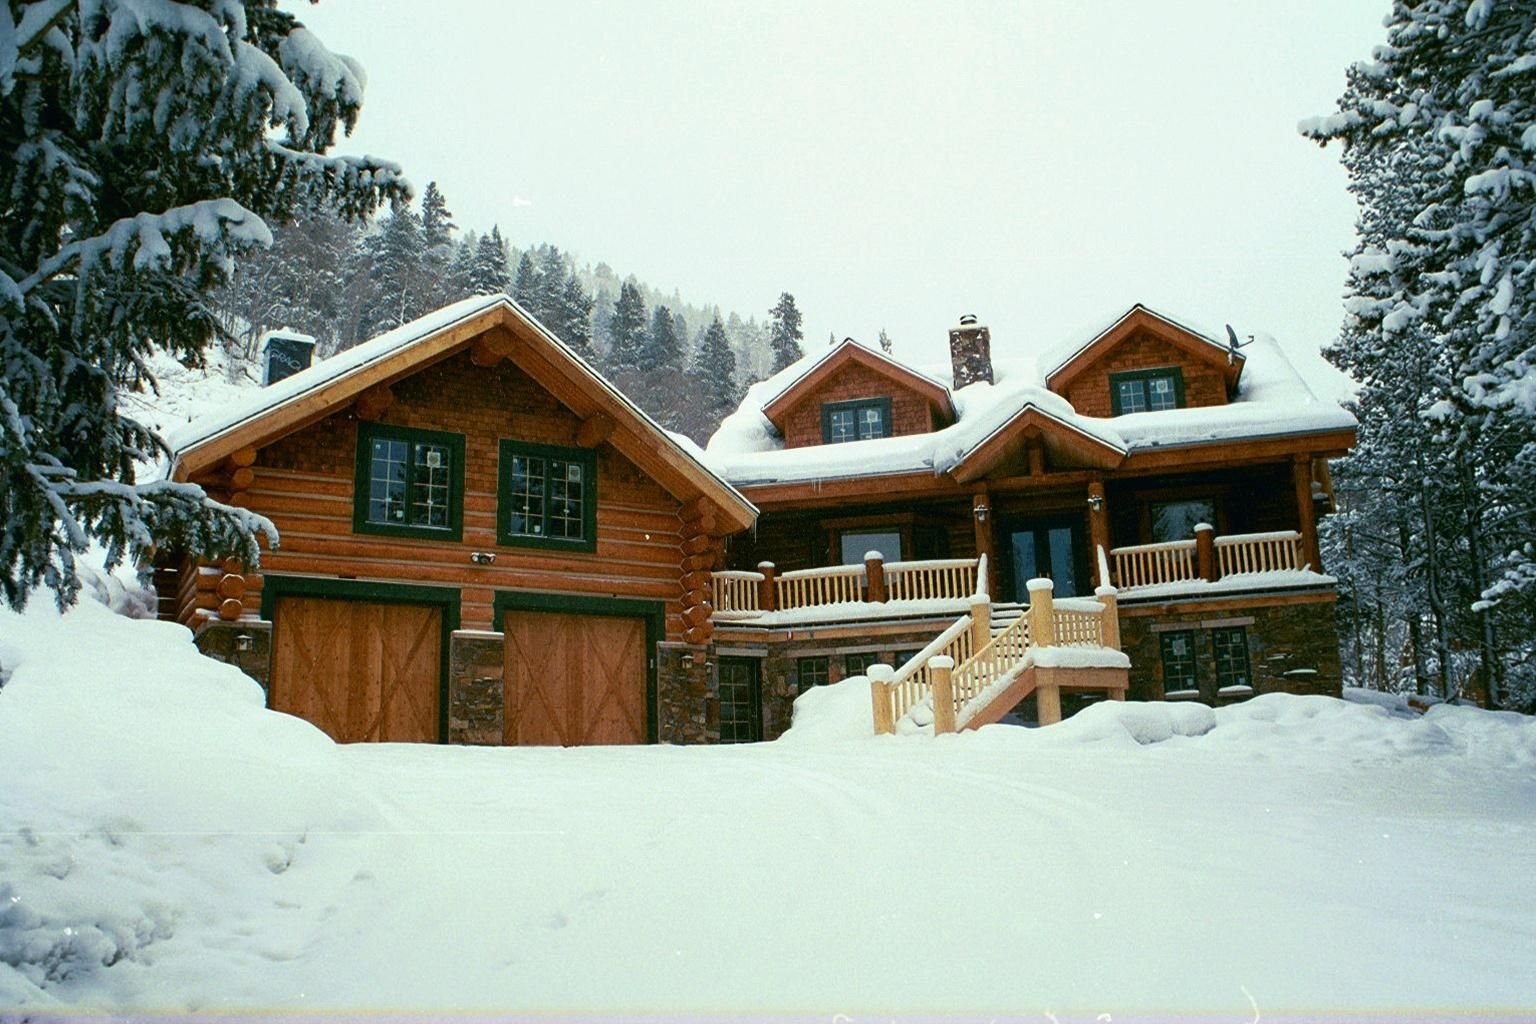 Breckenridge Colorado Vacation Cabin Rental   A True Rocky Mountain Log  Cabin Getaway Breckenridge, Colorado Log Cabin Surrounded By Th